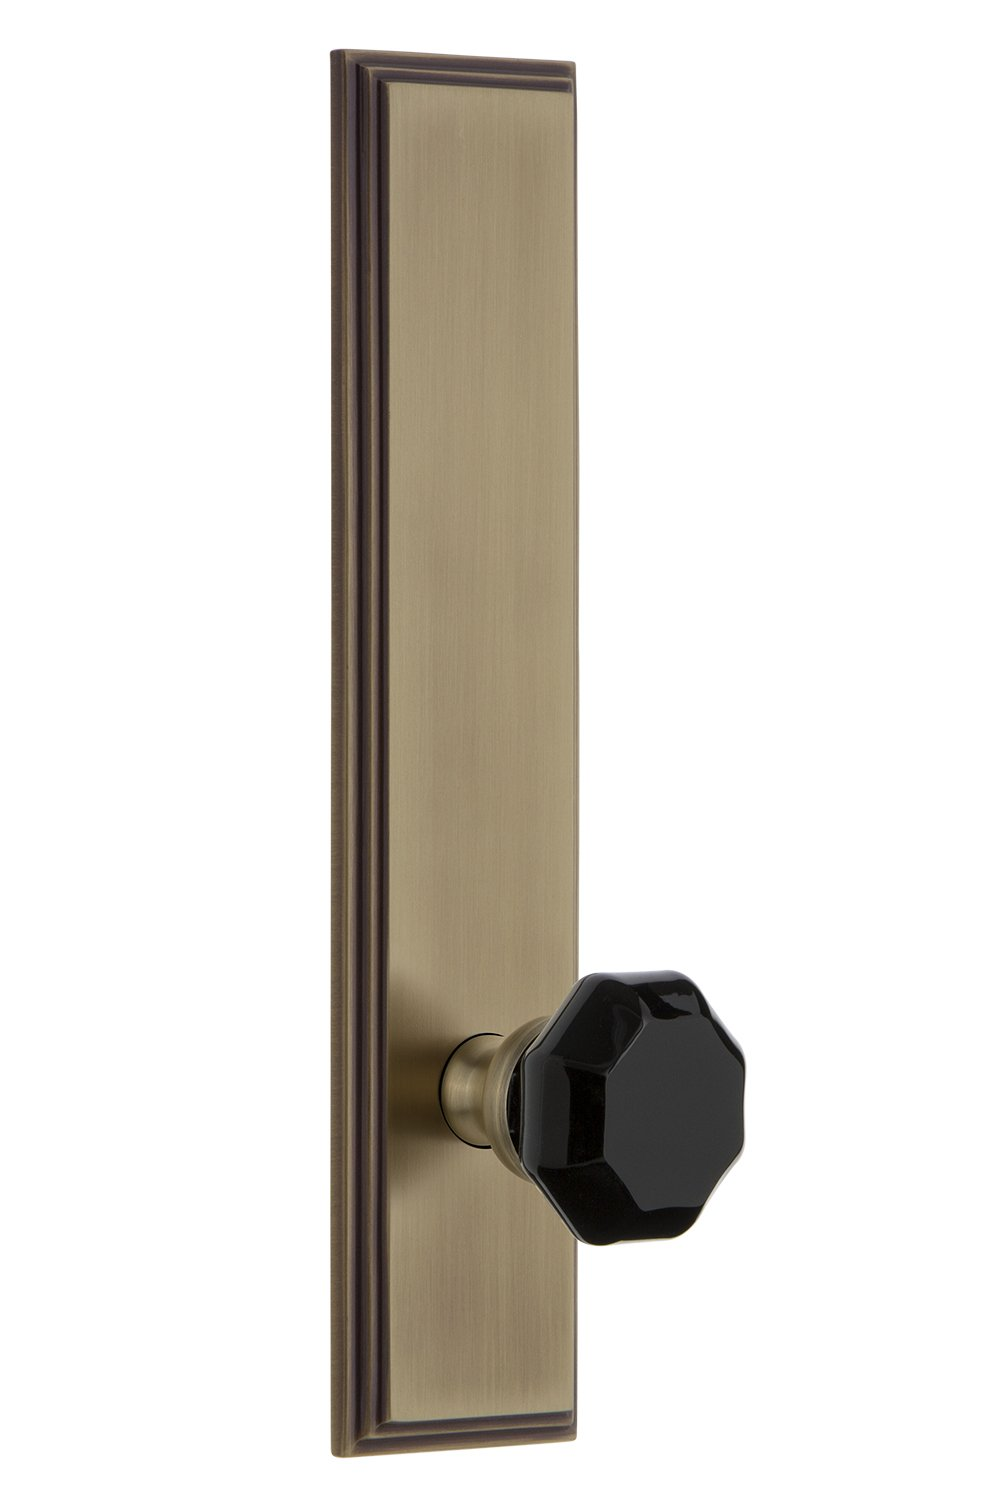 Grandeur Hardware 850738 Carre Tall Plate with Lyon Knob Double Dummy Vintage Brass